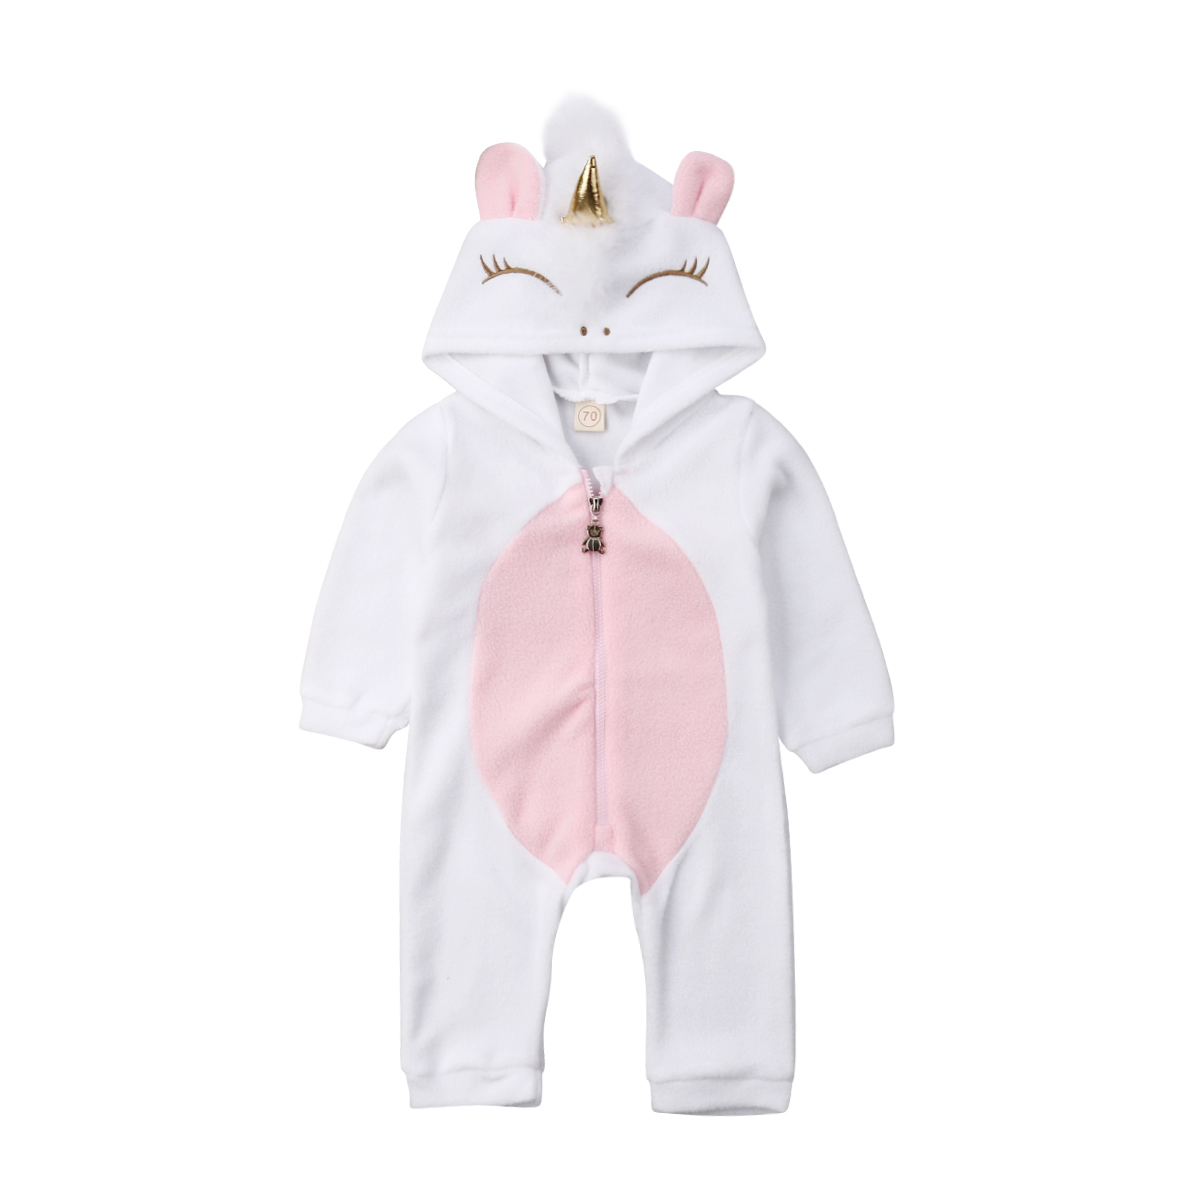 Pudcoco 0-24M Cute Costume Newborn Baby Girls Fiy Wing Unicorn Flannel   Romper   Jumpsuit Outfits Hooded Warm